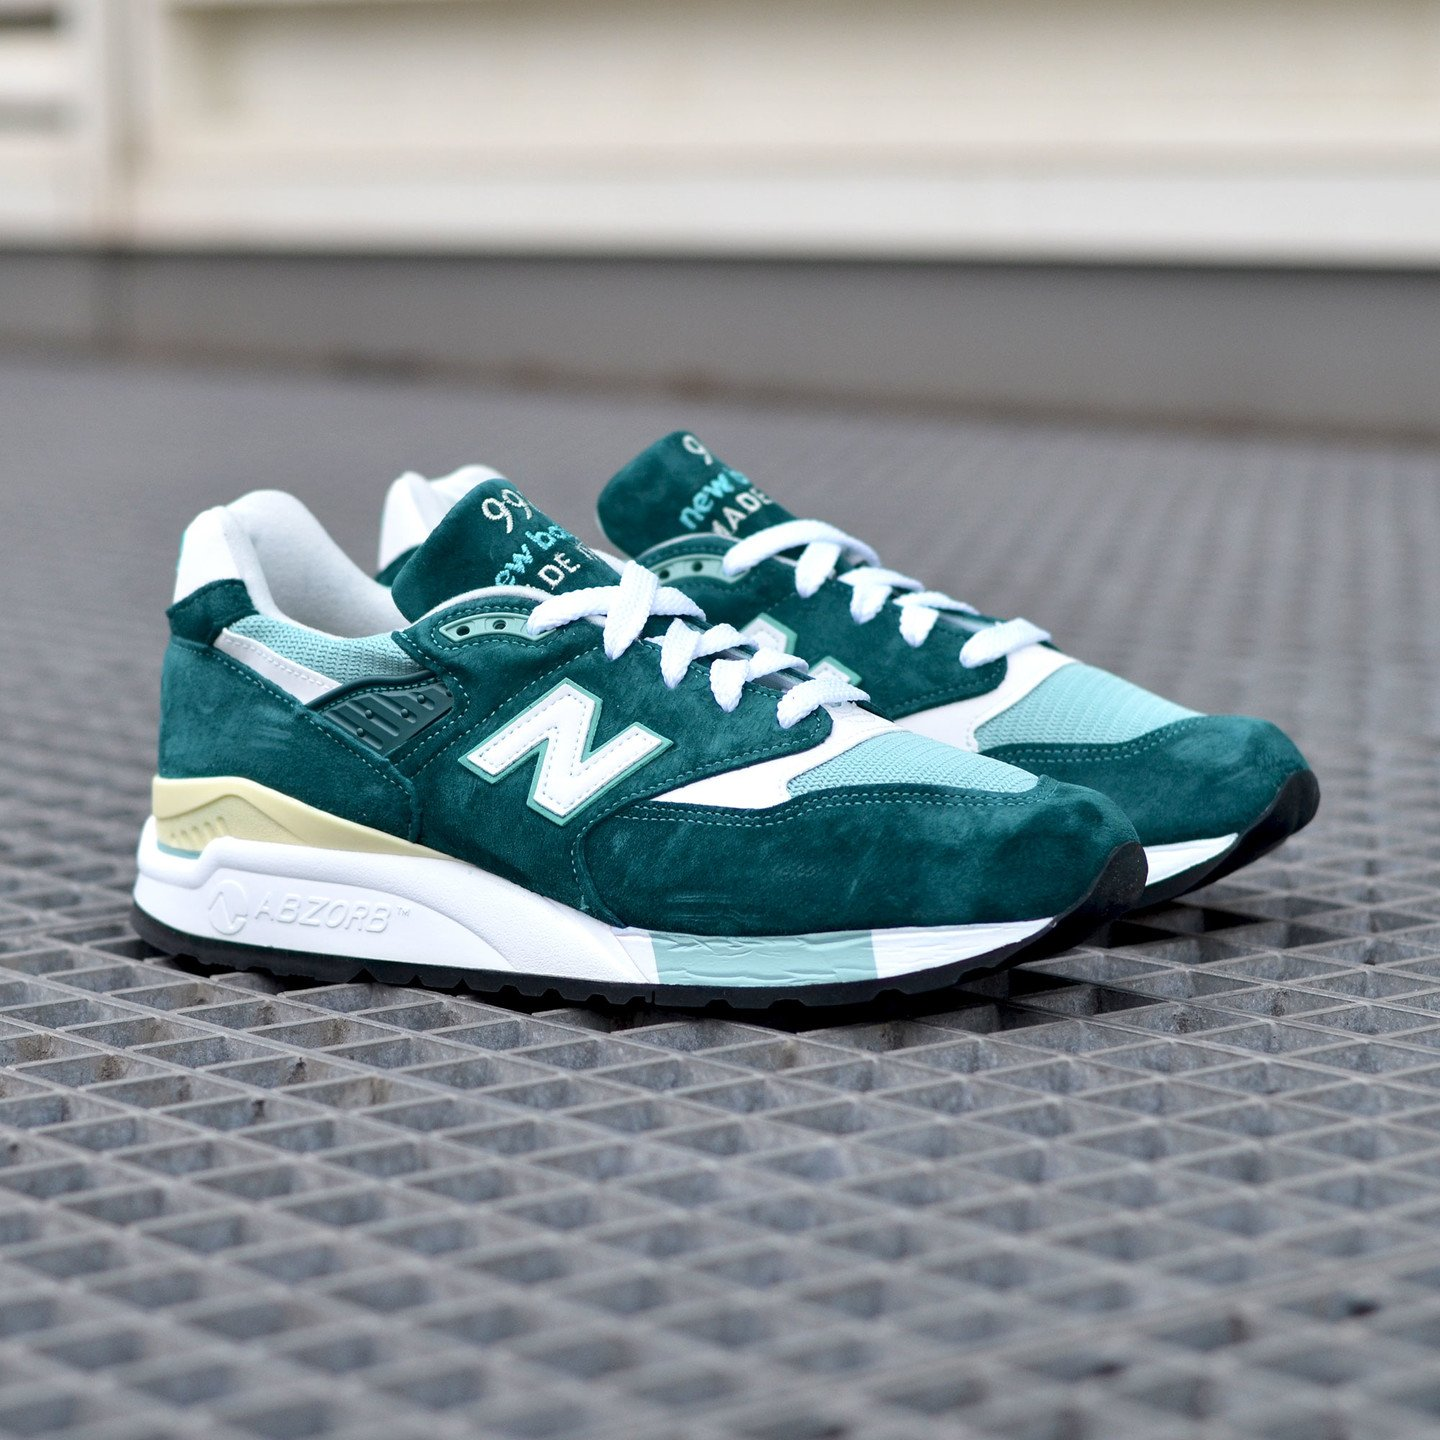 New Balance M998 Made in USA Sea Green / White M998CSAM-44.5